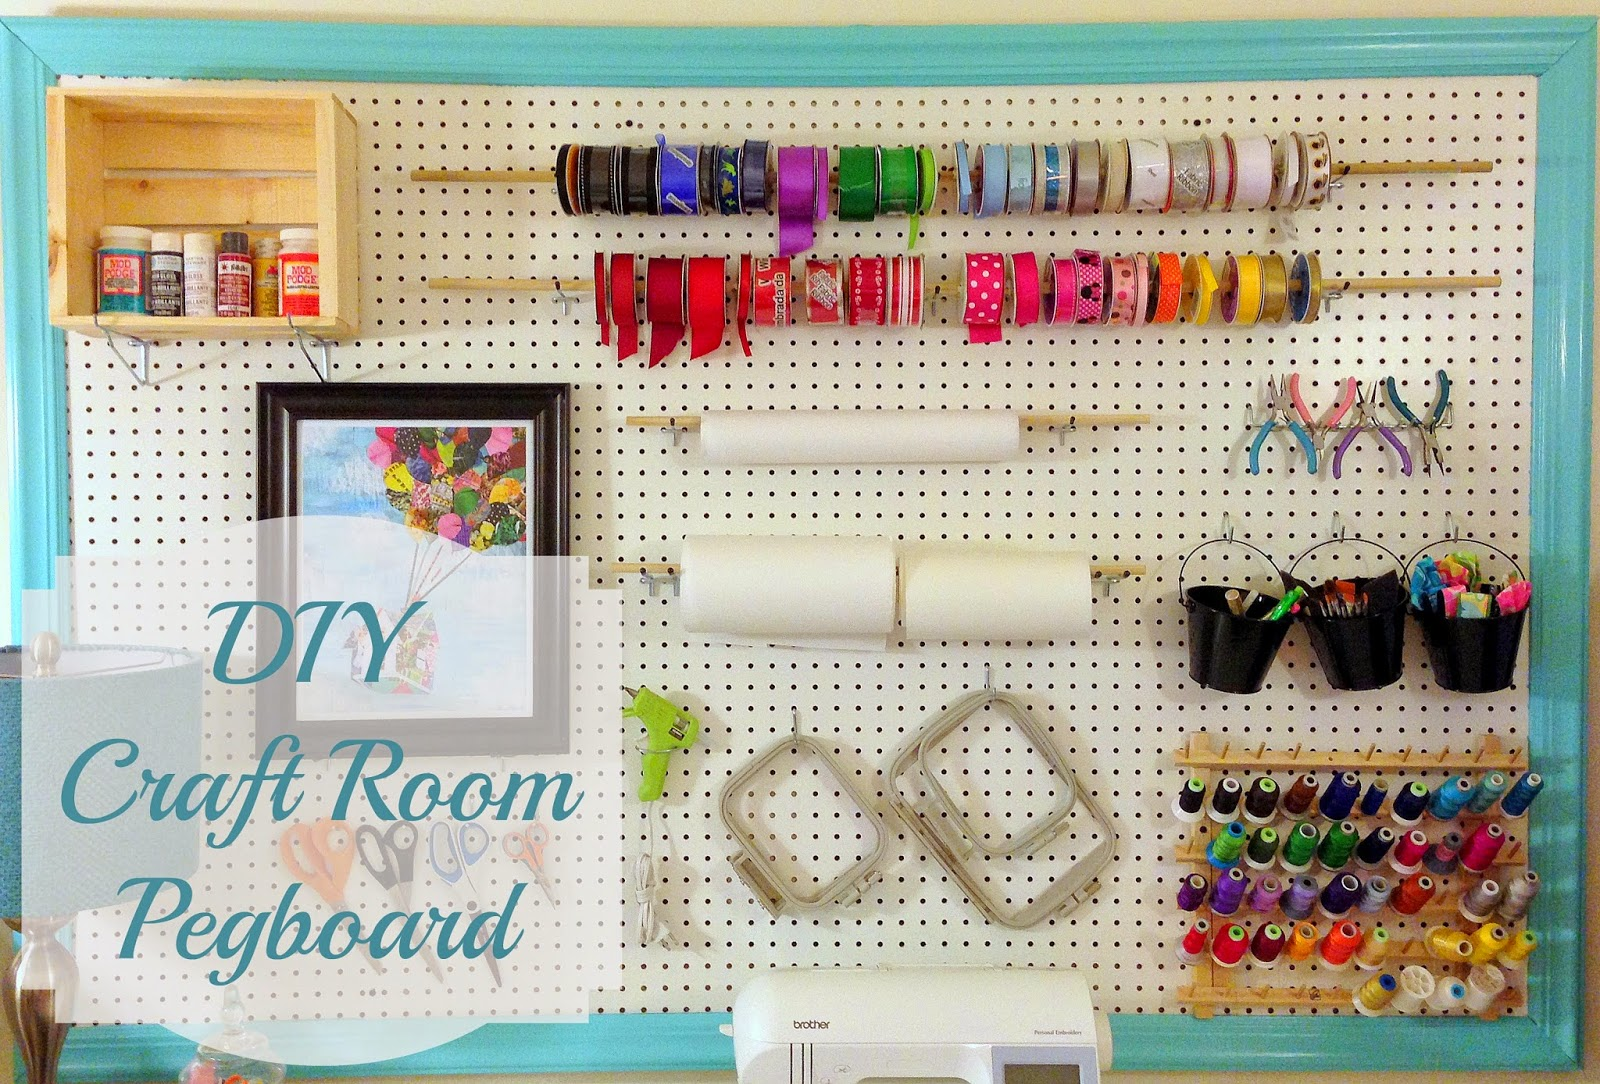 A little bolt of life diy craft room pegboard for Craft room pegboard accessories